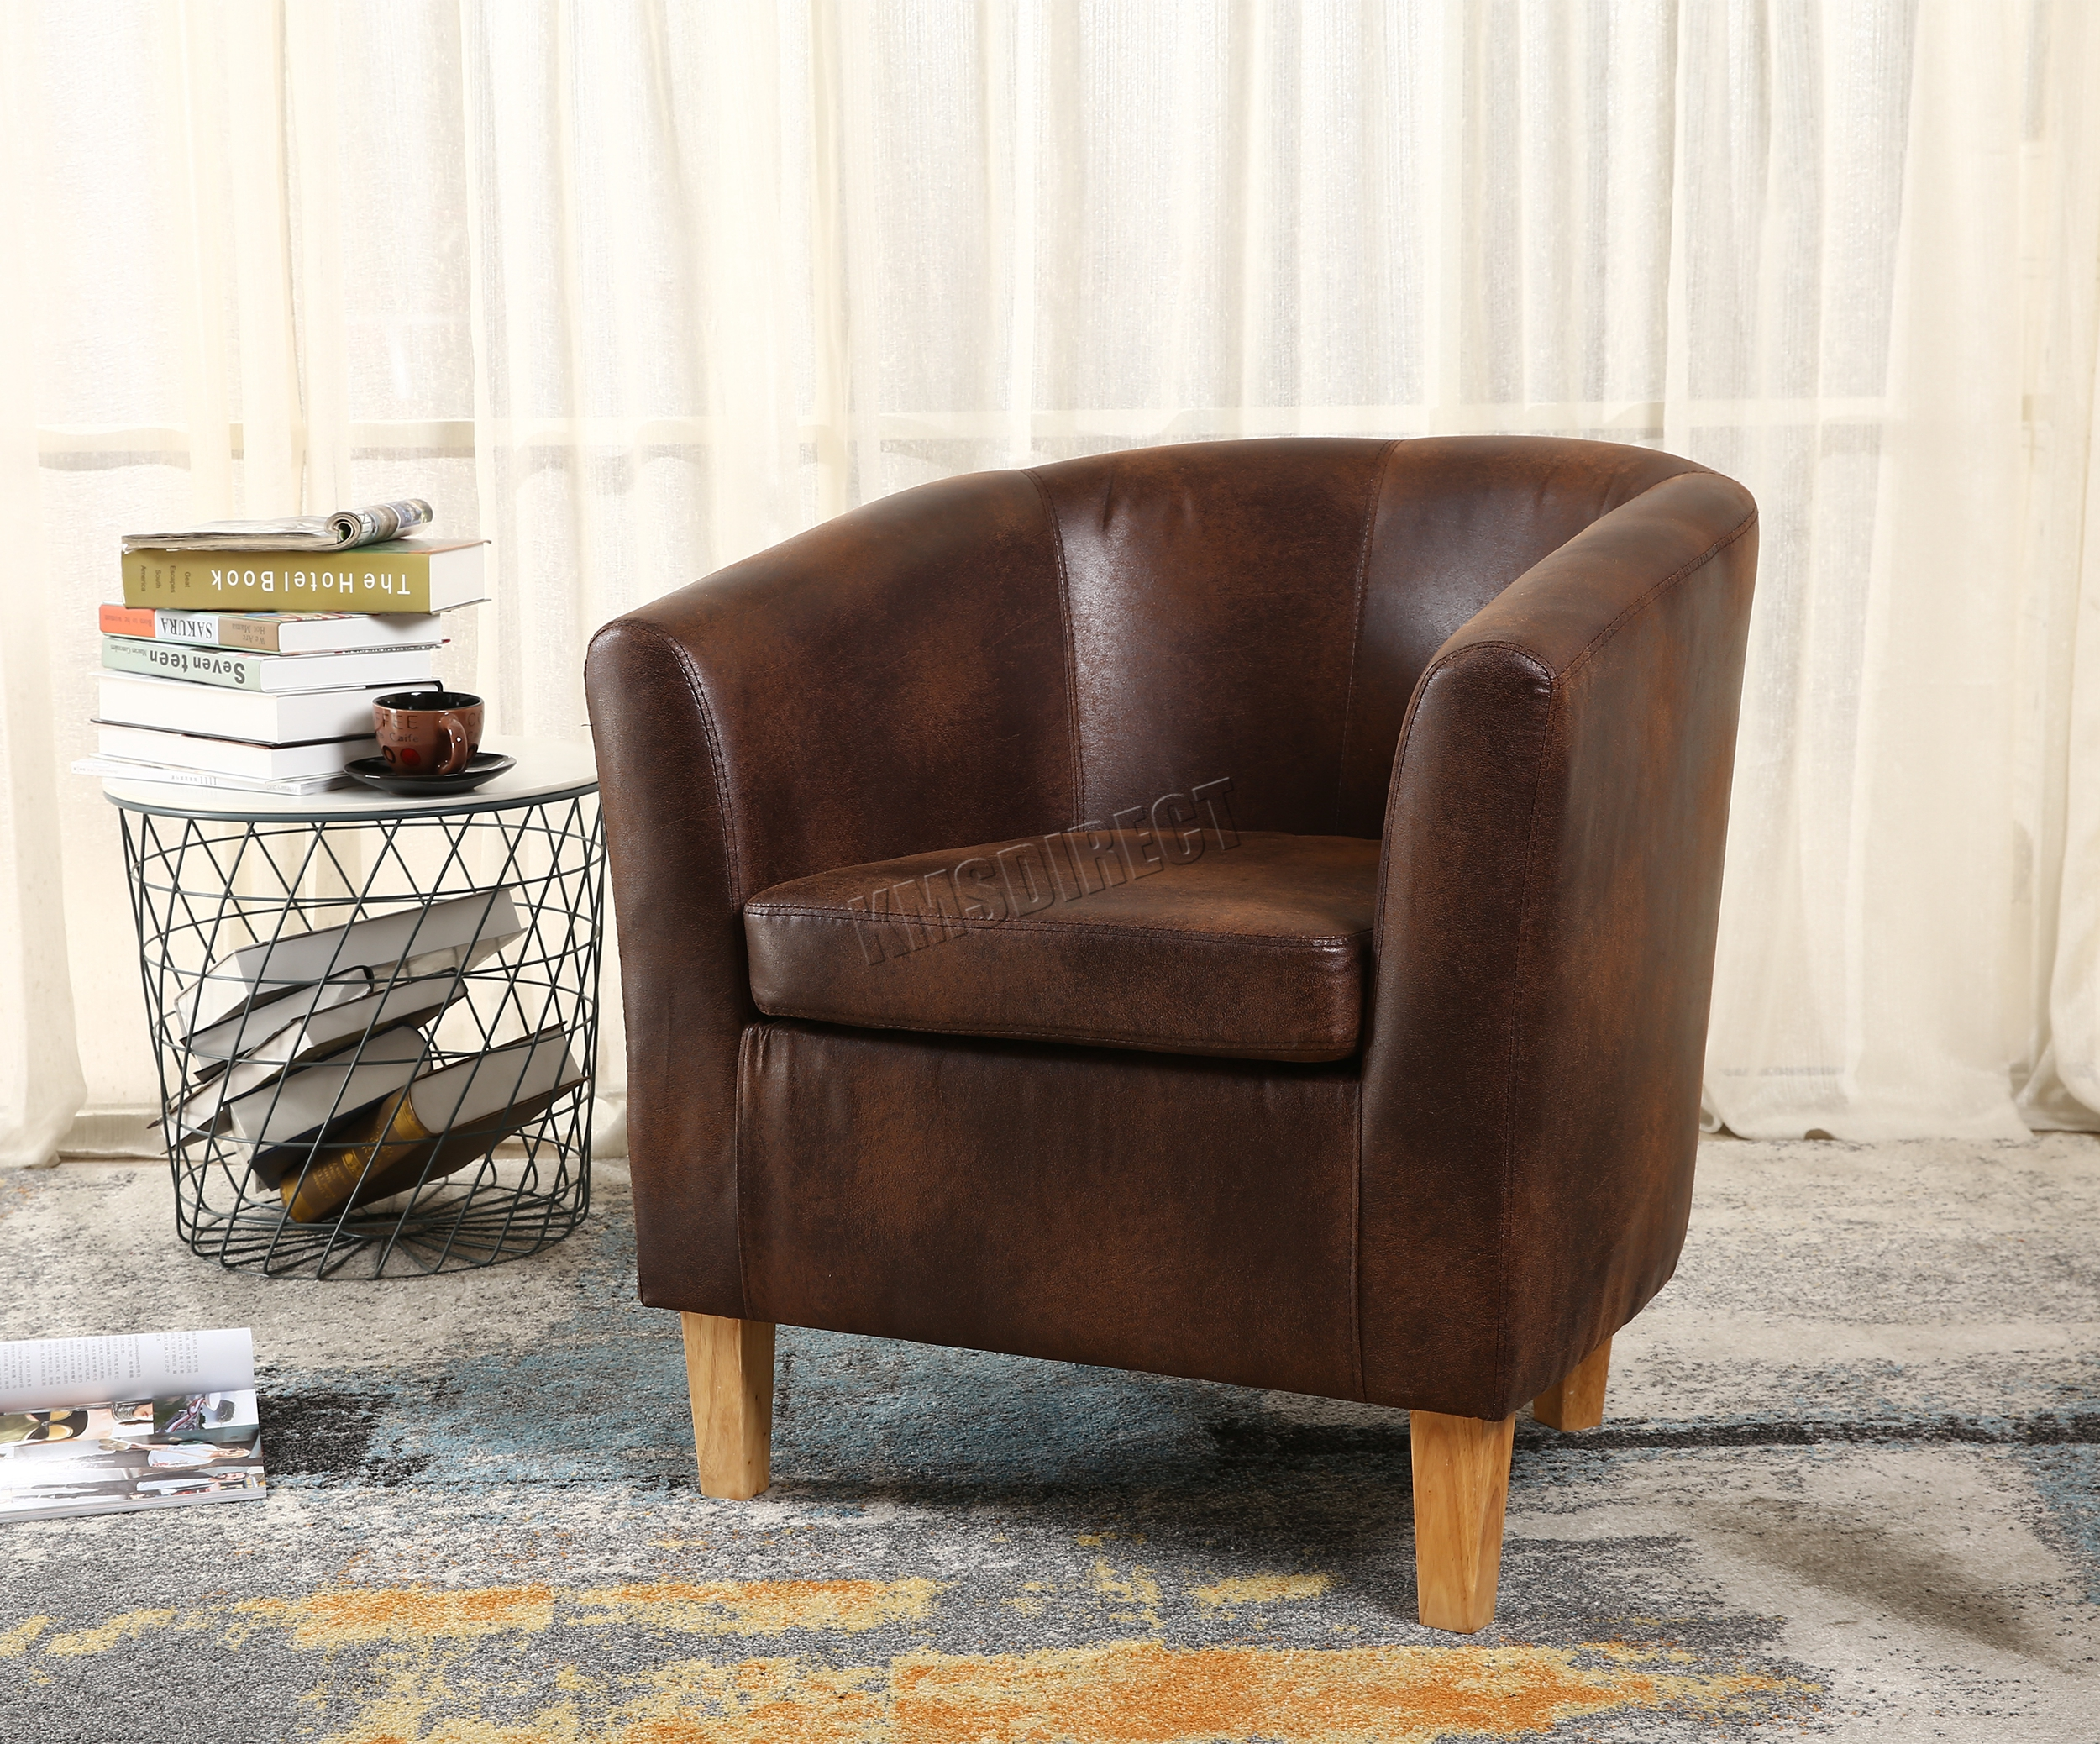 FoxHunter Vintage Brown Faux Leather Tub Chair Armchair Dining